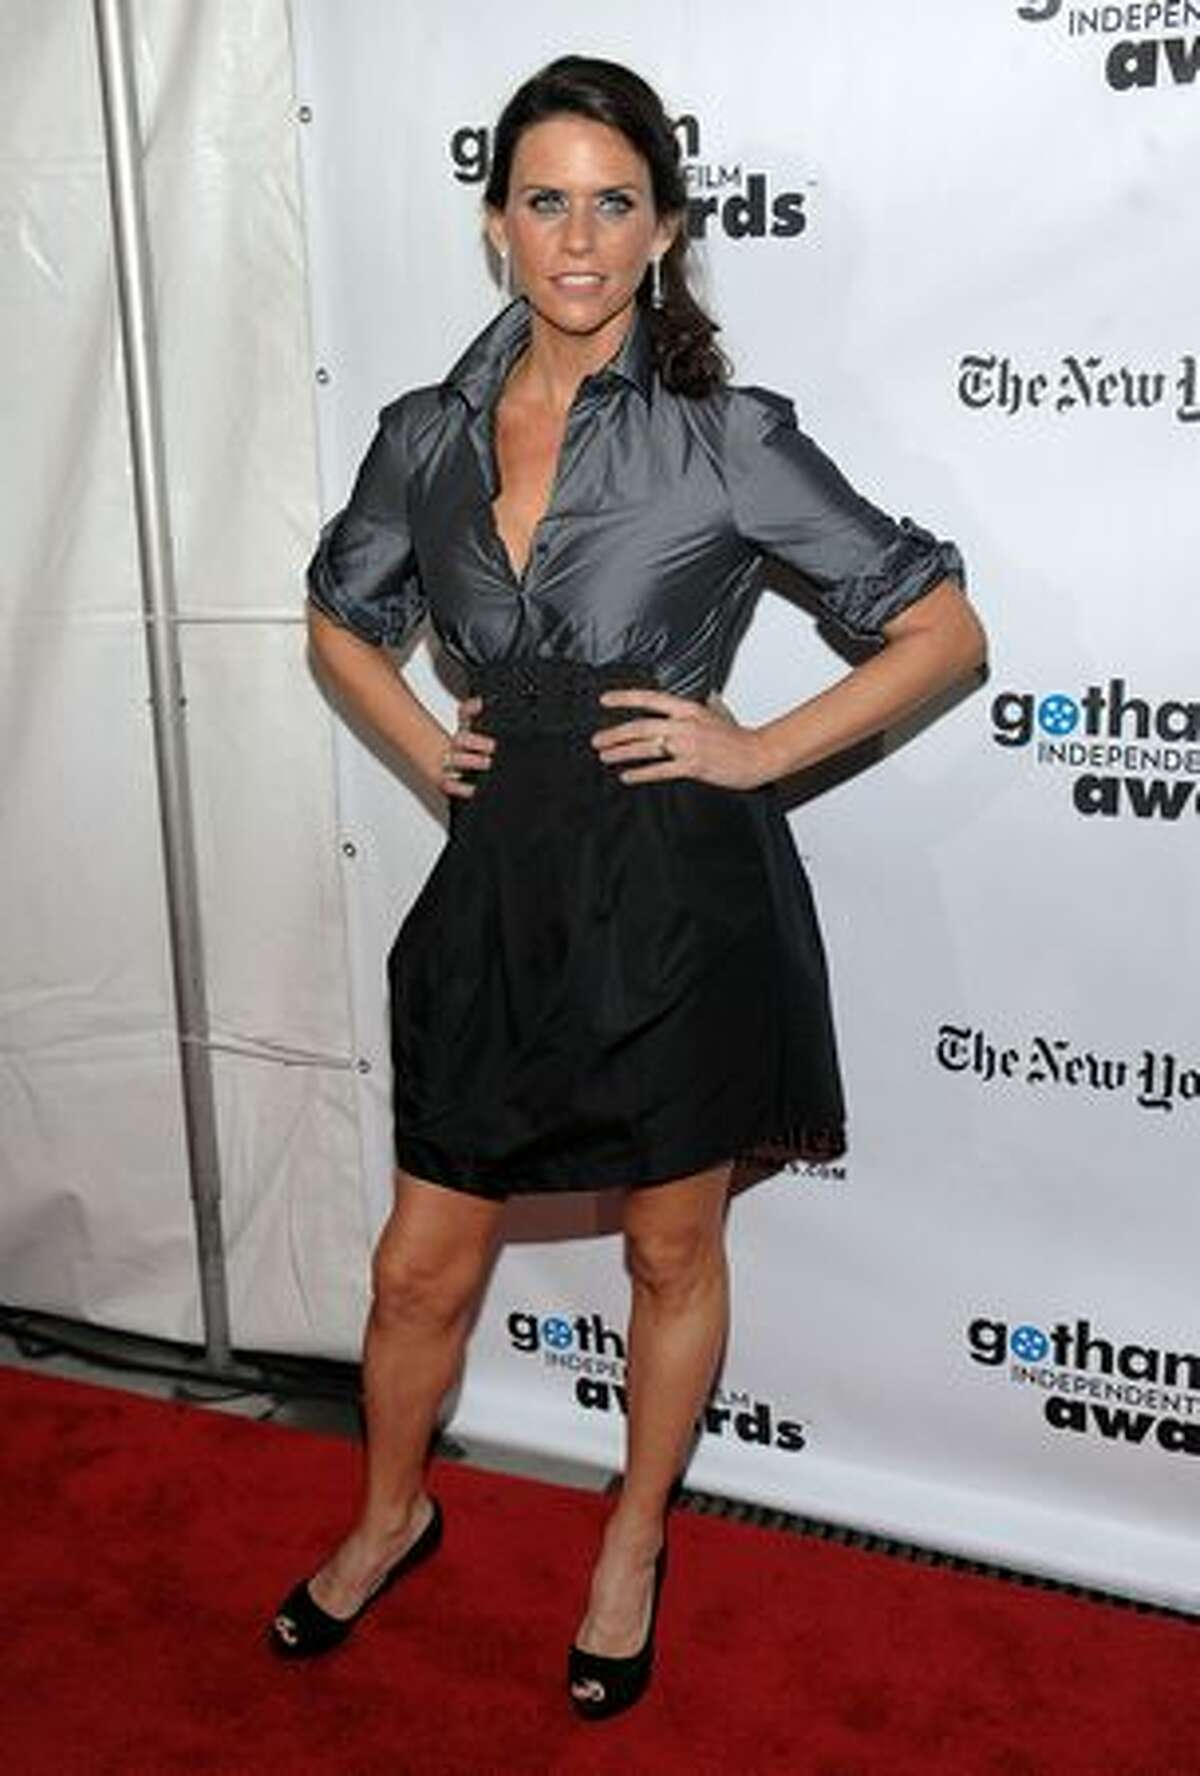 Actress Amy Landecker attends IFP's 19th Annual Gotham Independent Film Awards at Cipriani, Wall Street on November 30, 2009 in New York City.